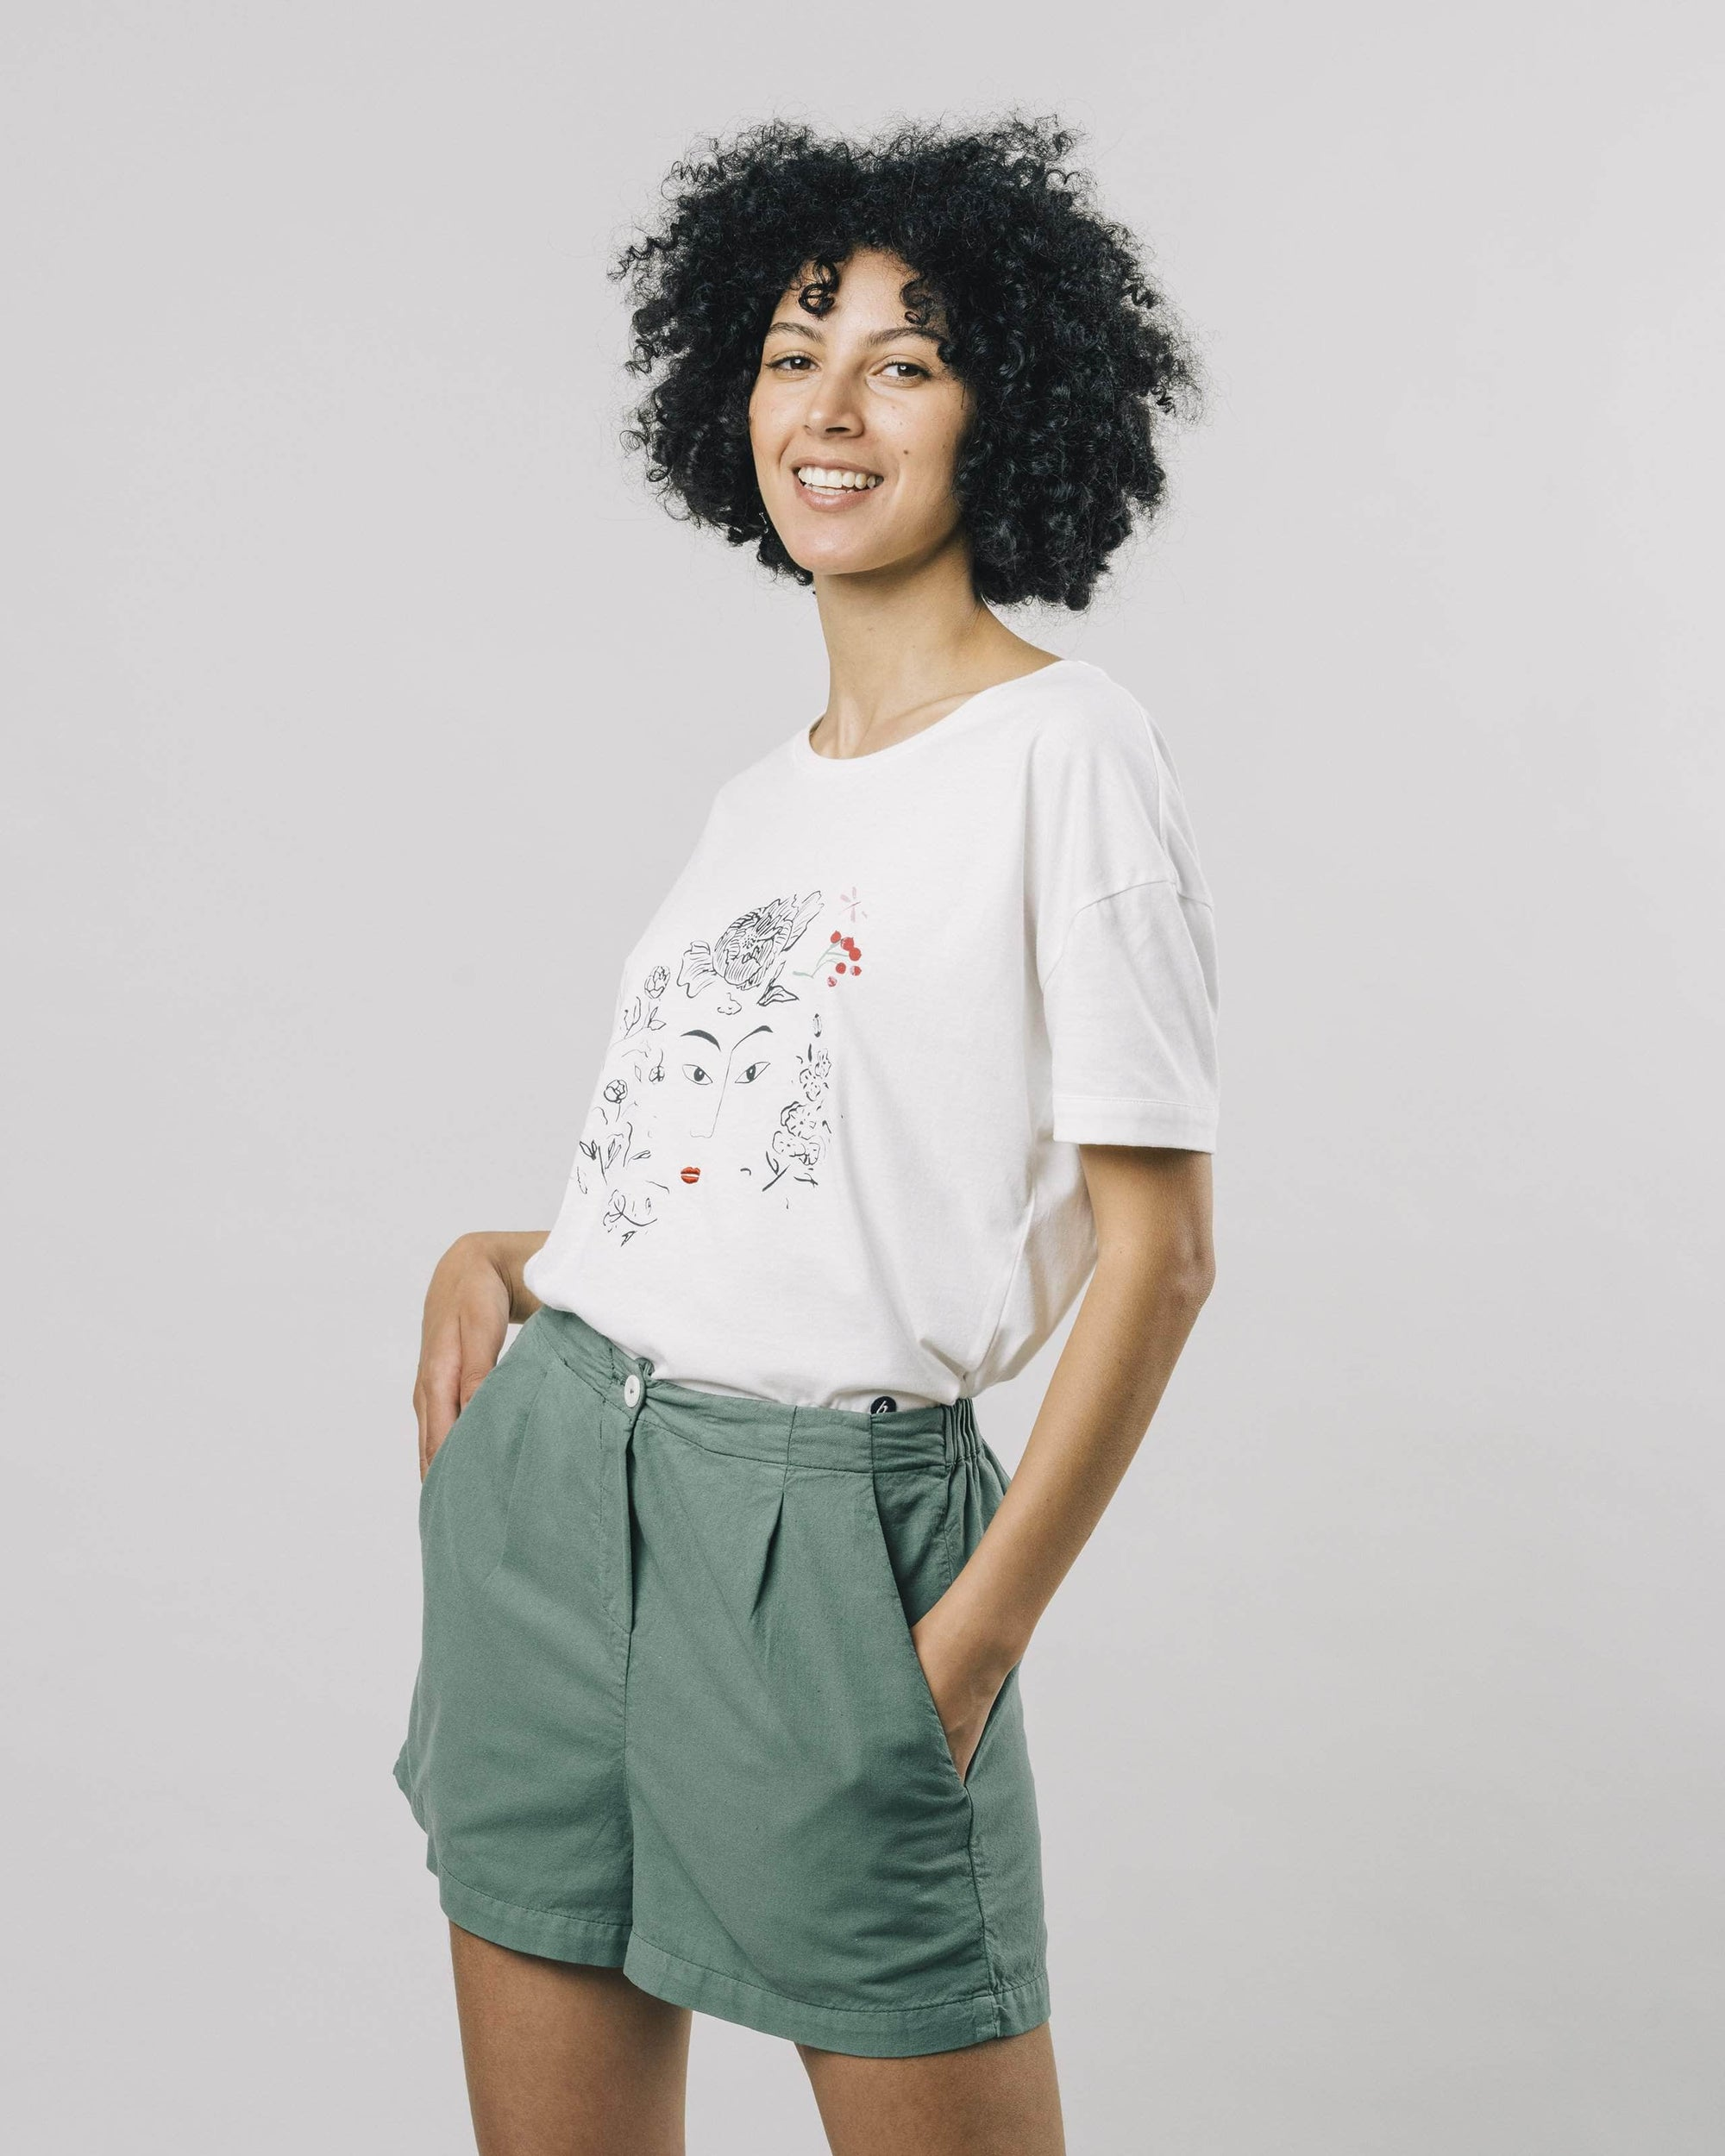 Discover our Flower Face T-Shirt made of Organic Cotton. Find fair & sustainable Oversized T-Shirt for Women by Brava Fabrics, ethically made in Portugal.